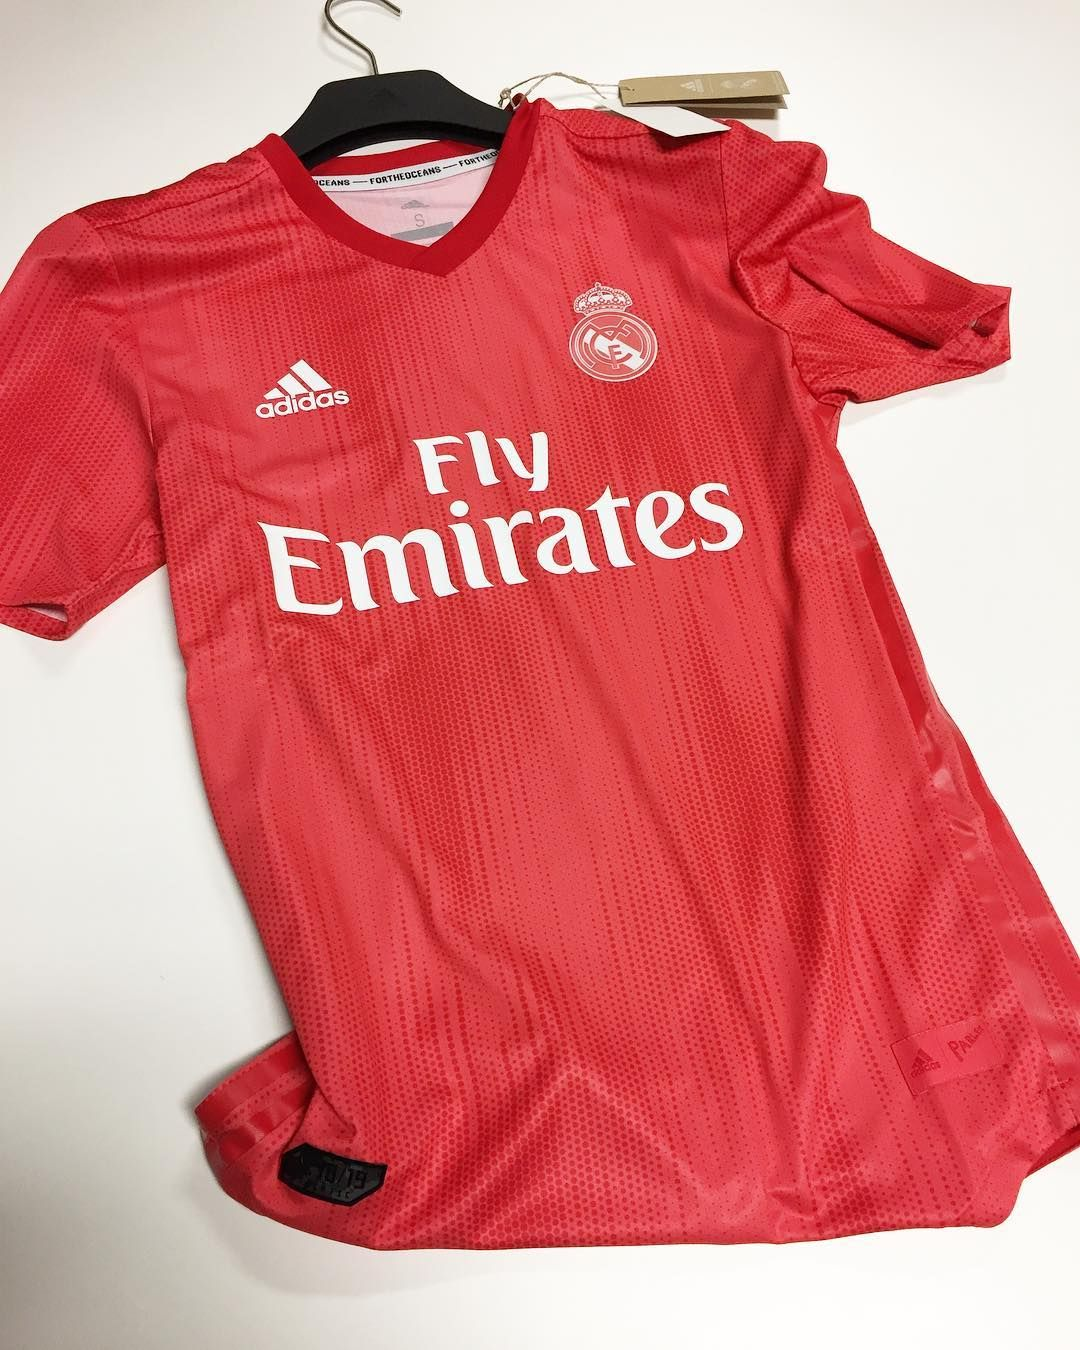 bd209f5f6e5 Made from Parley ocean plastic. The 2018 19 adidas Real Madrid 3rd Jersey.